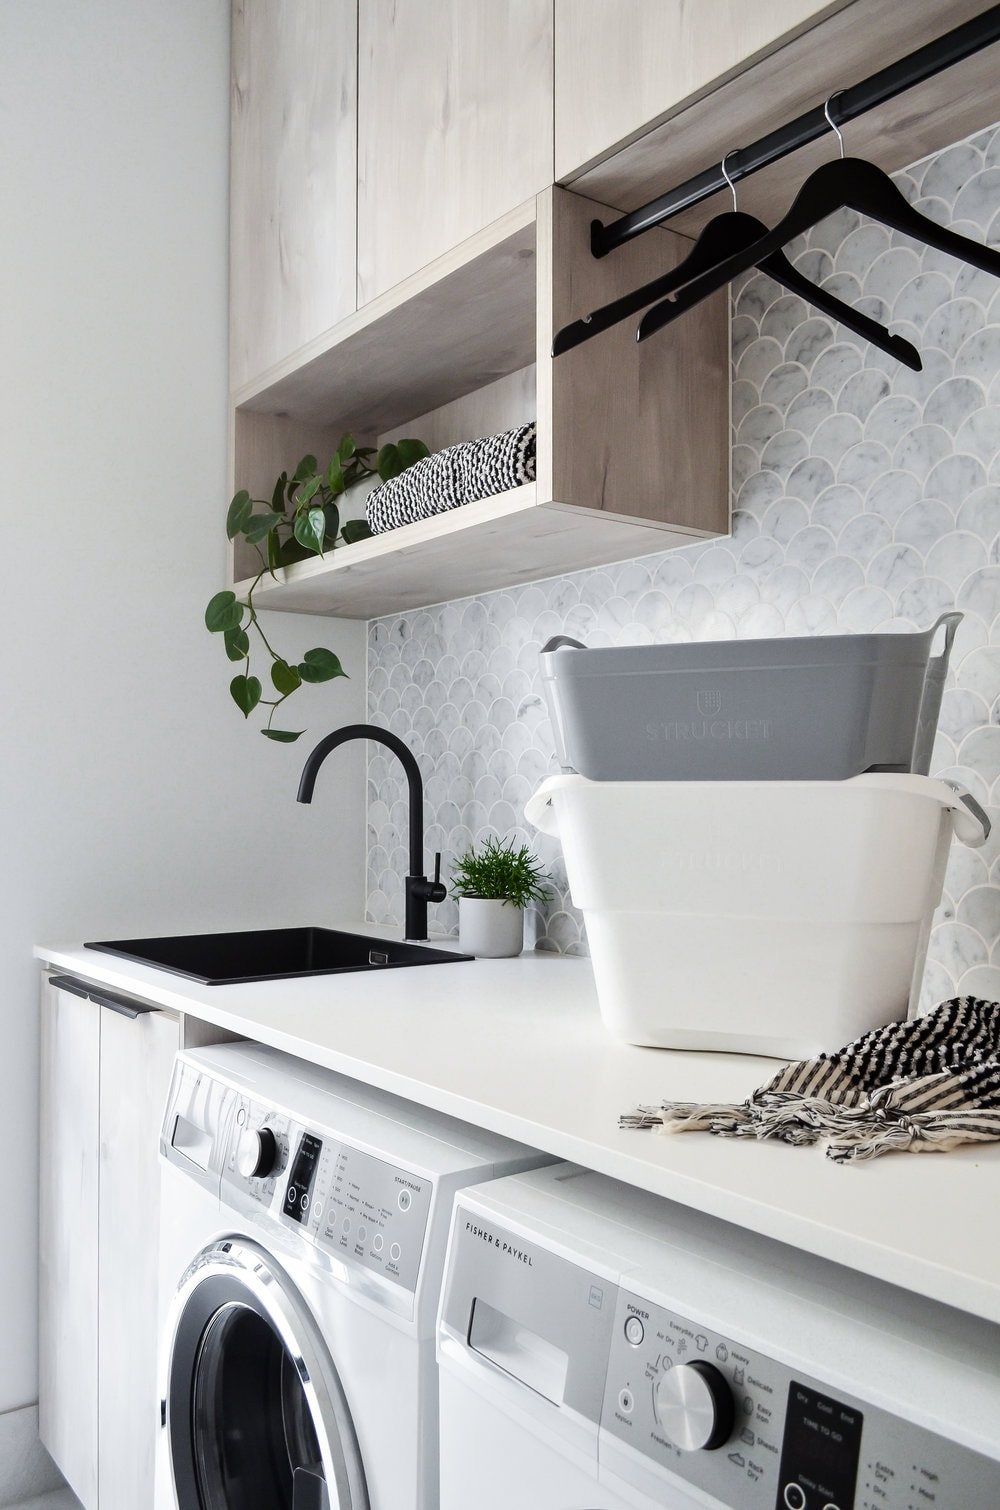 marble laundry tile with black tap and sink in modern laundry